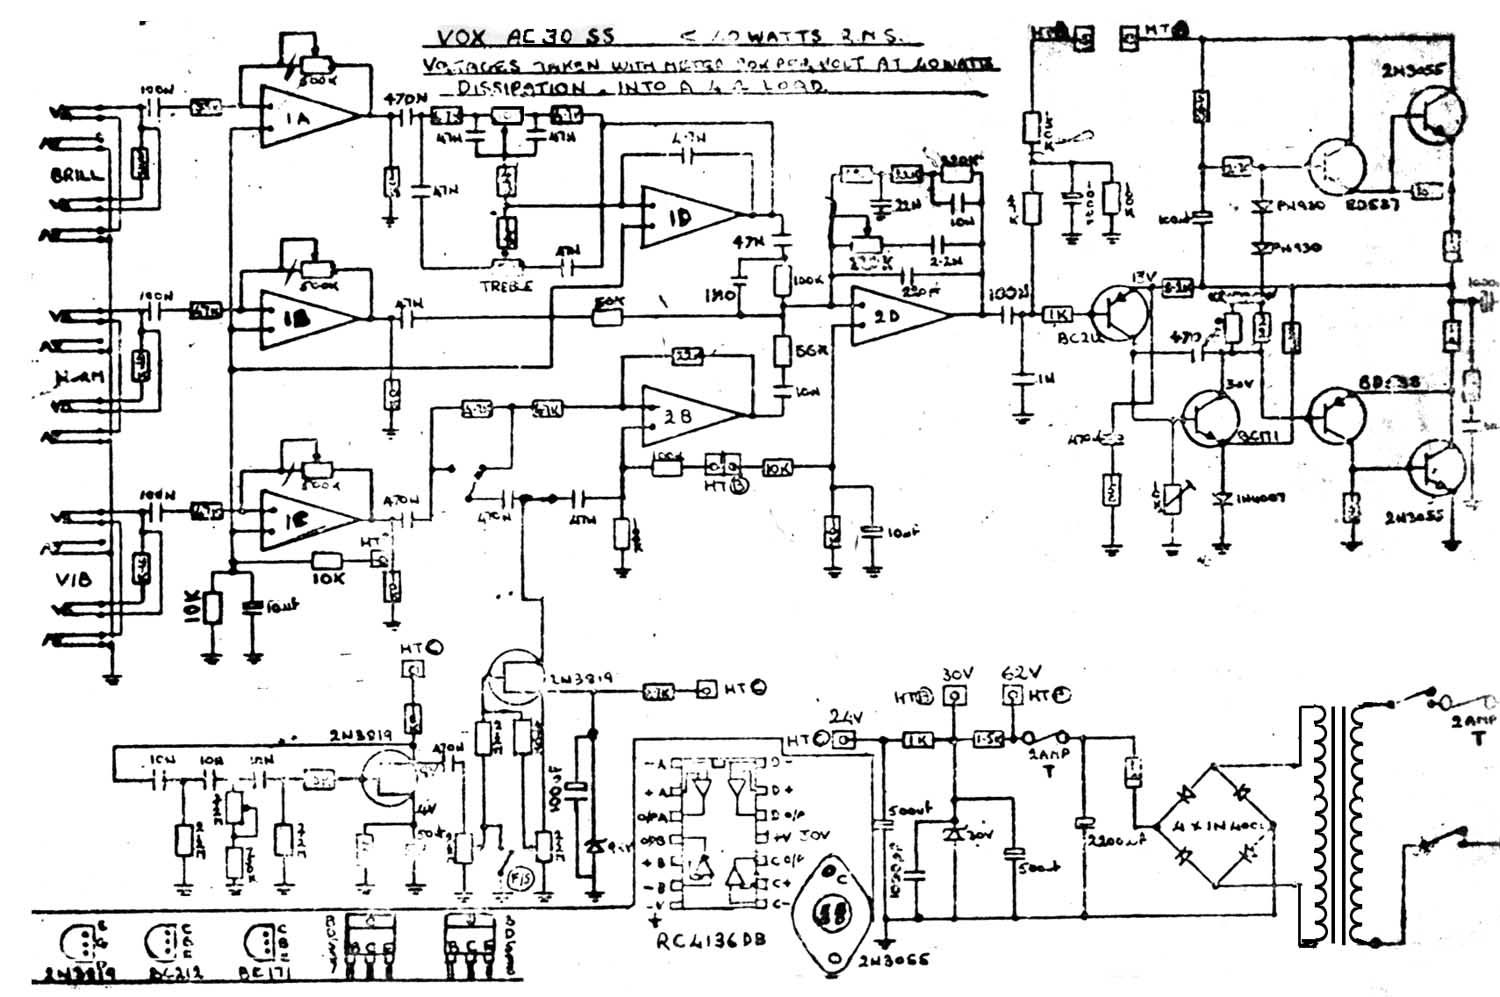 240v Stove Wiring Diagram Free Download Schematic Vox Vintage Circuit Diagrams